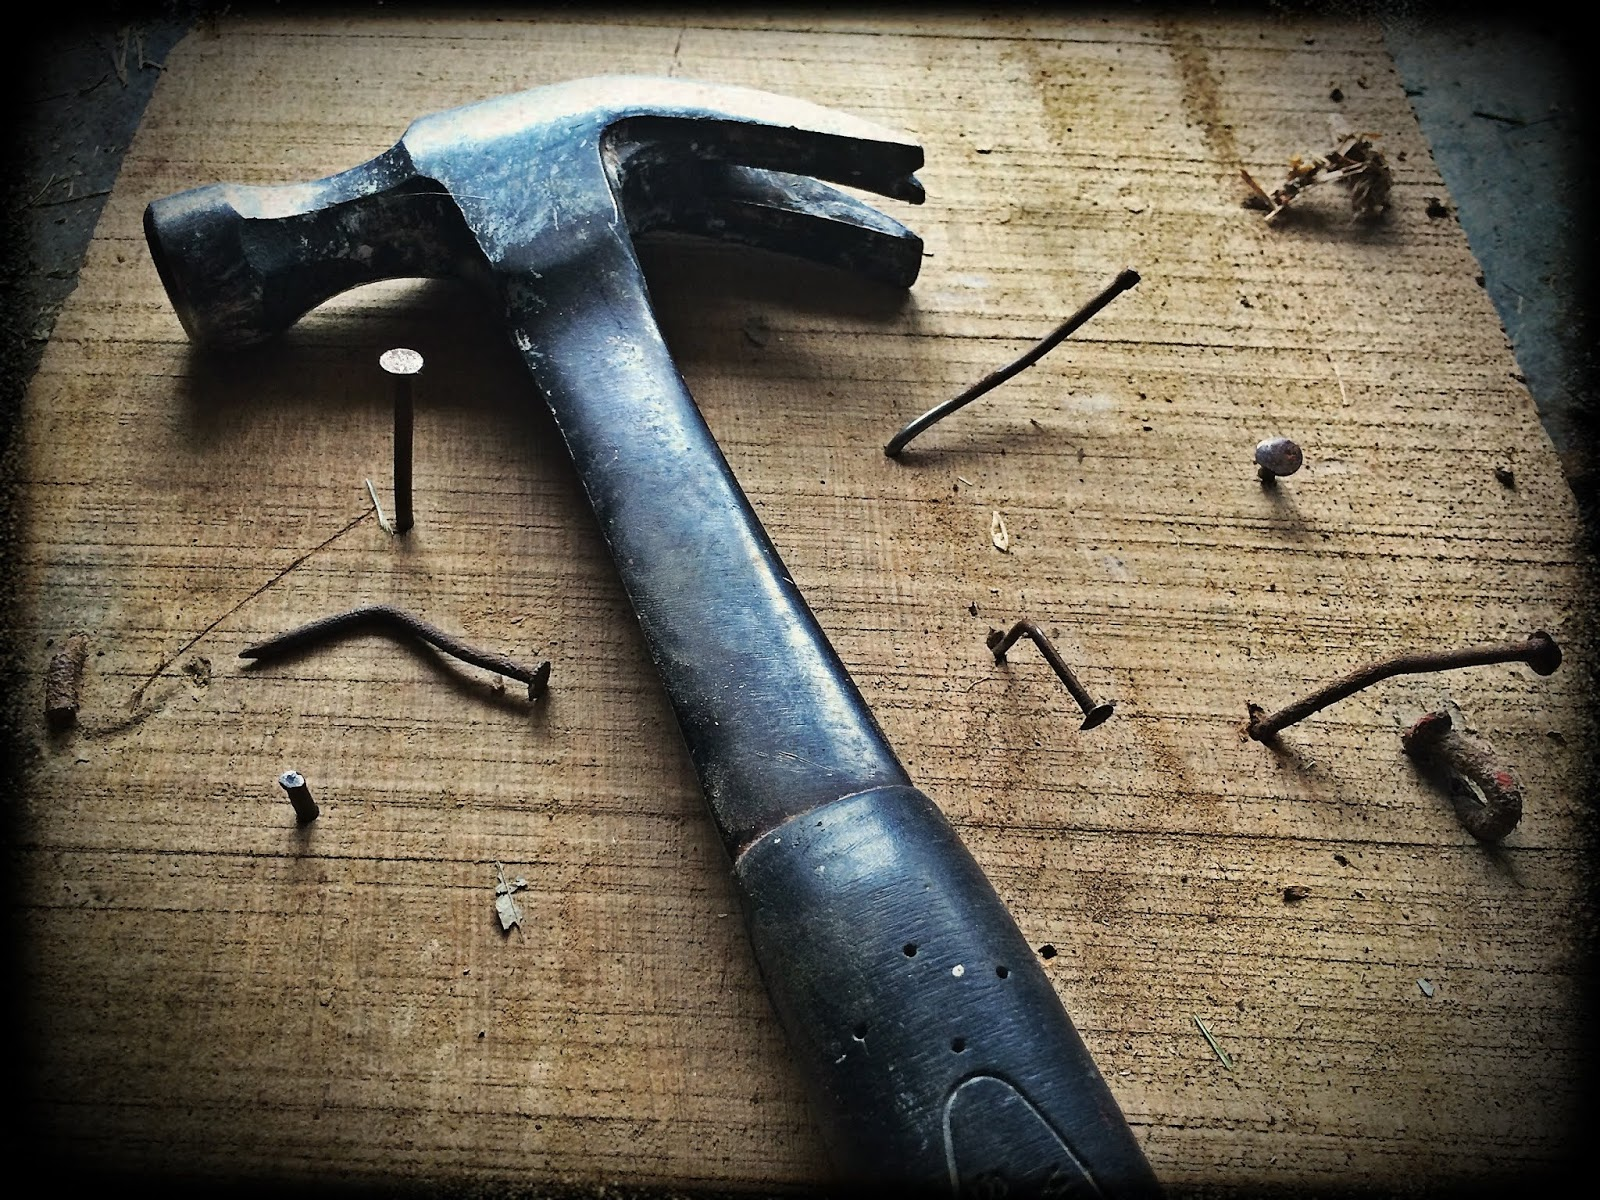 LEADERS BEWARE: The Implications Of Using The Hammer Principle